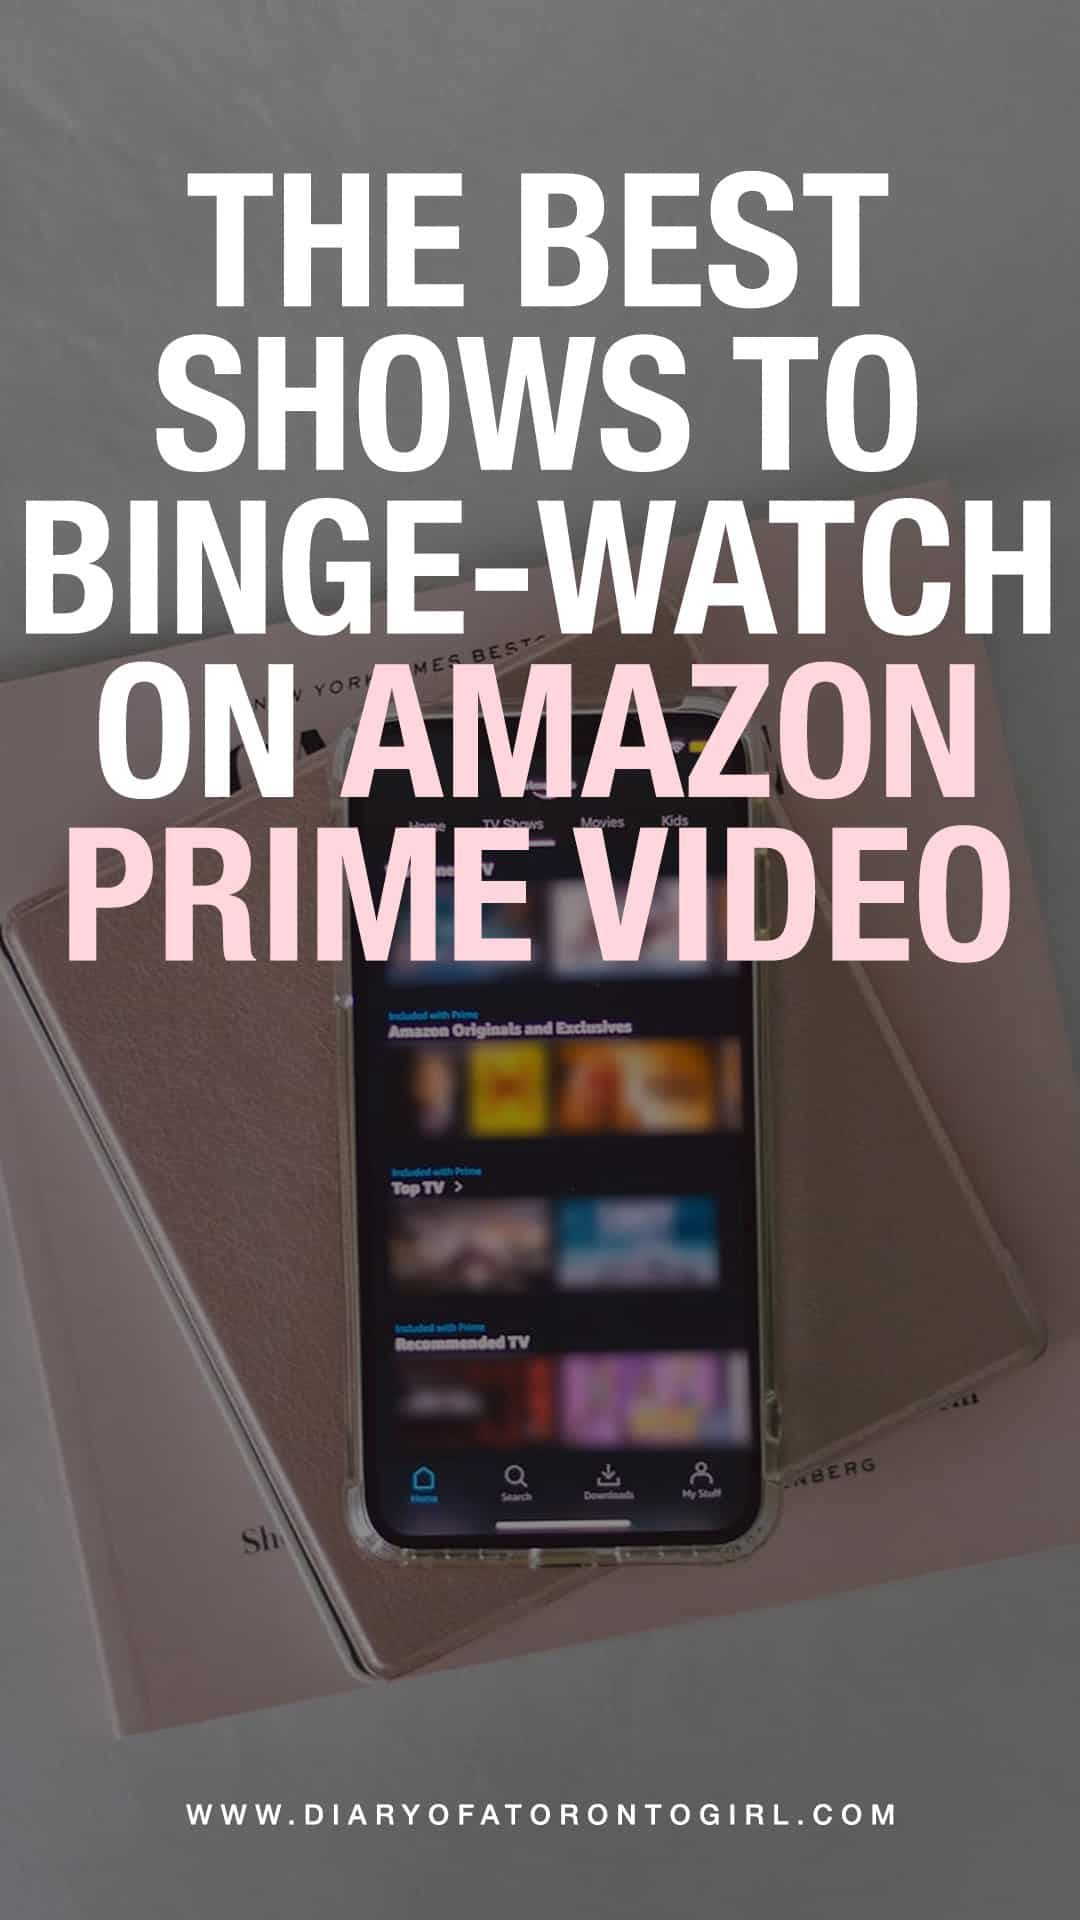 Looking for a great new show to binge-watch? Here are some of the best television series and shows to watch on Amazon Prime Video in Canada!